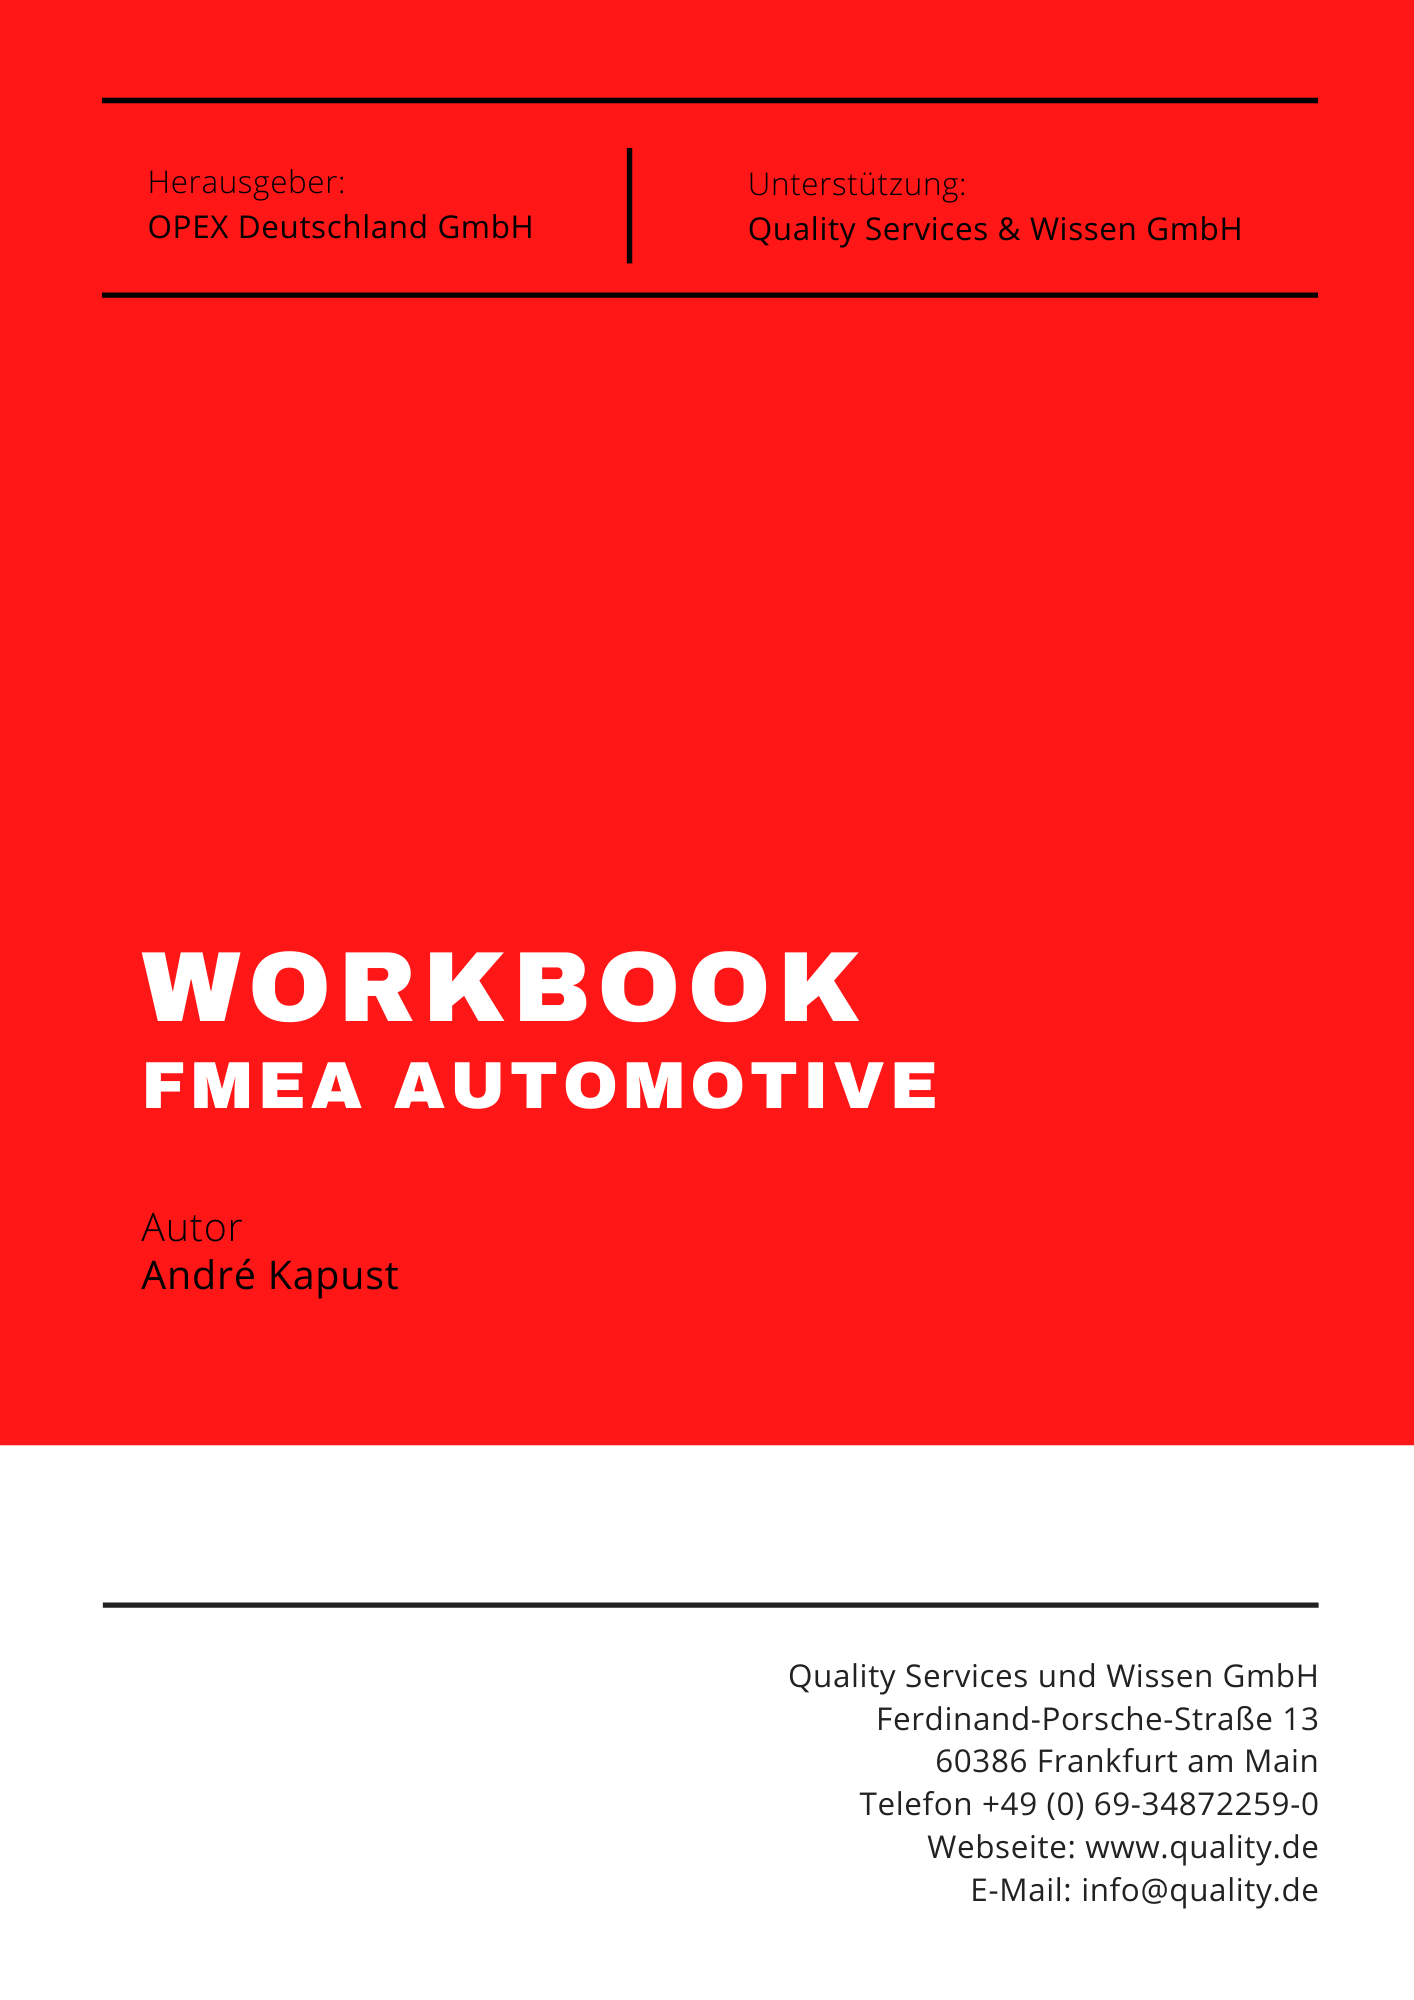 Workbook FMEA Automotive